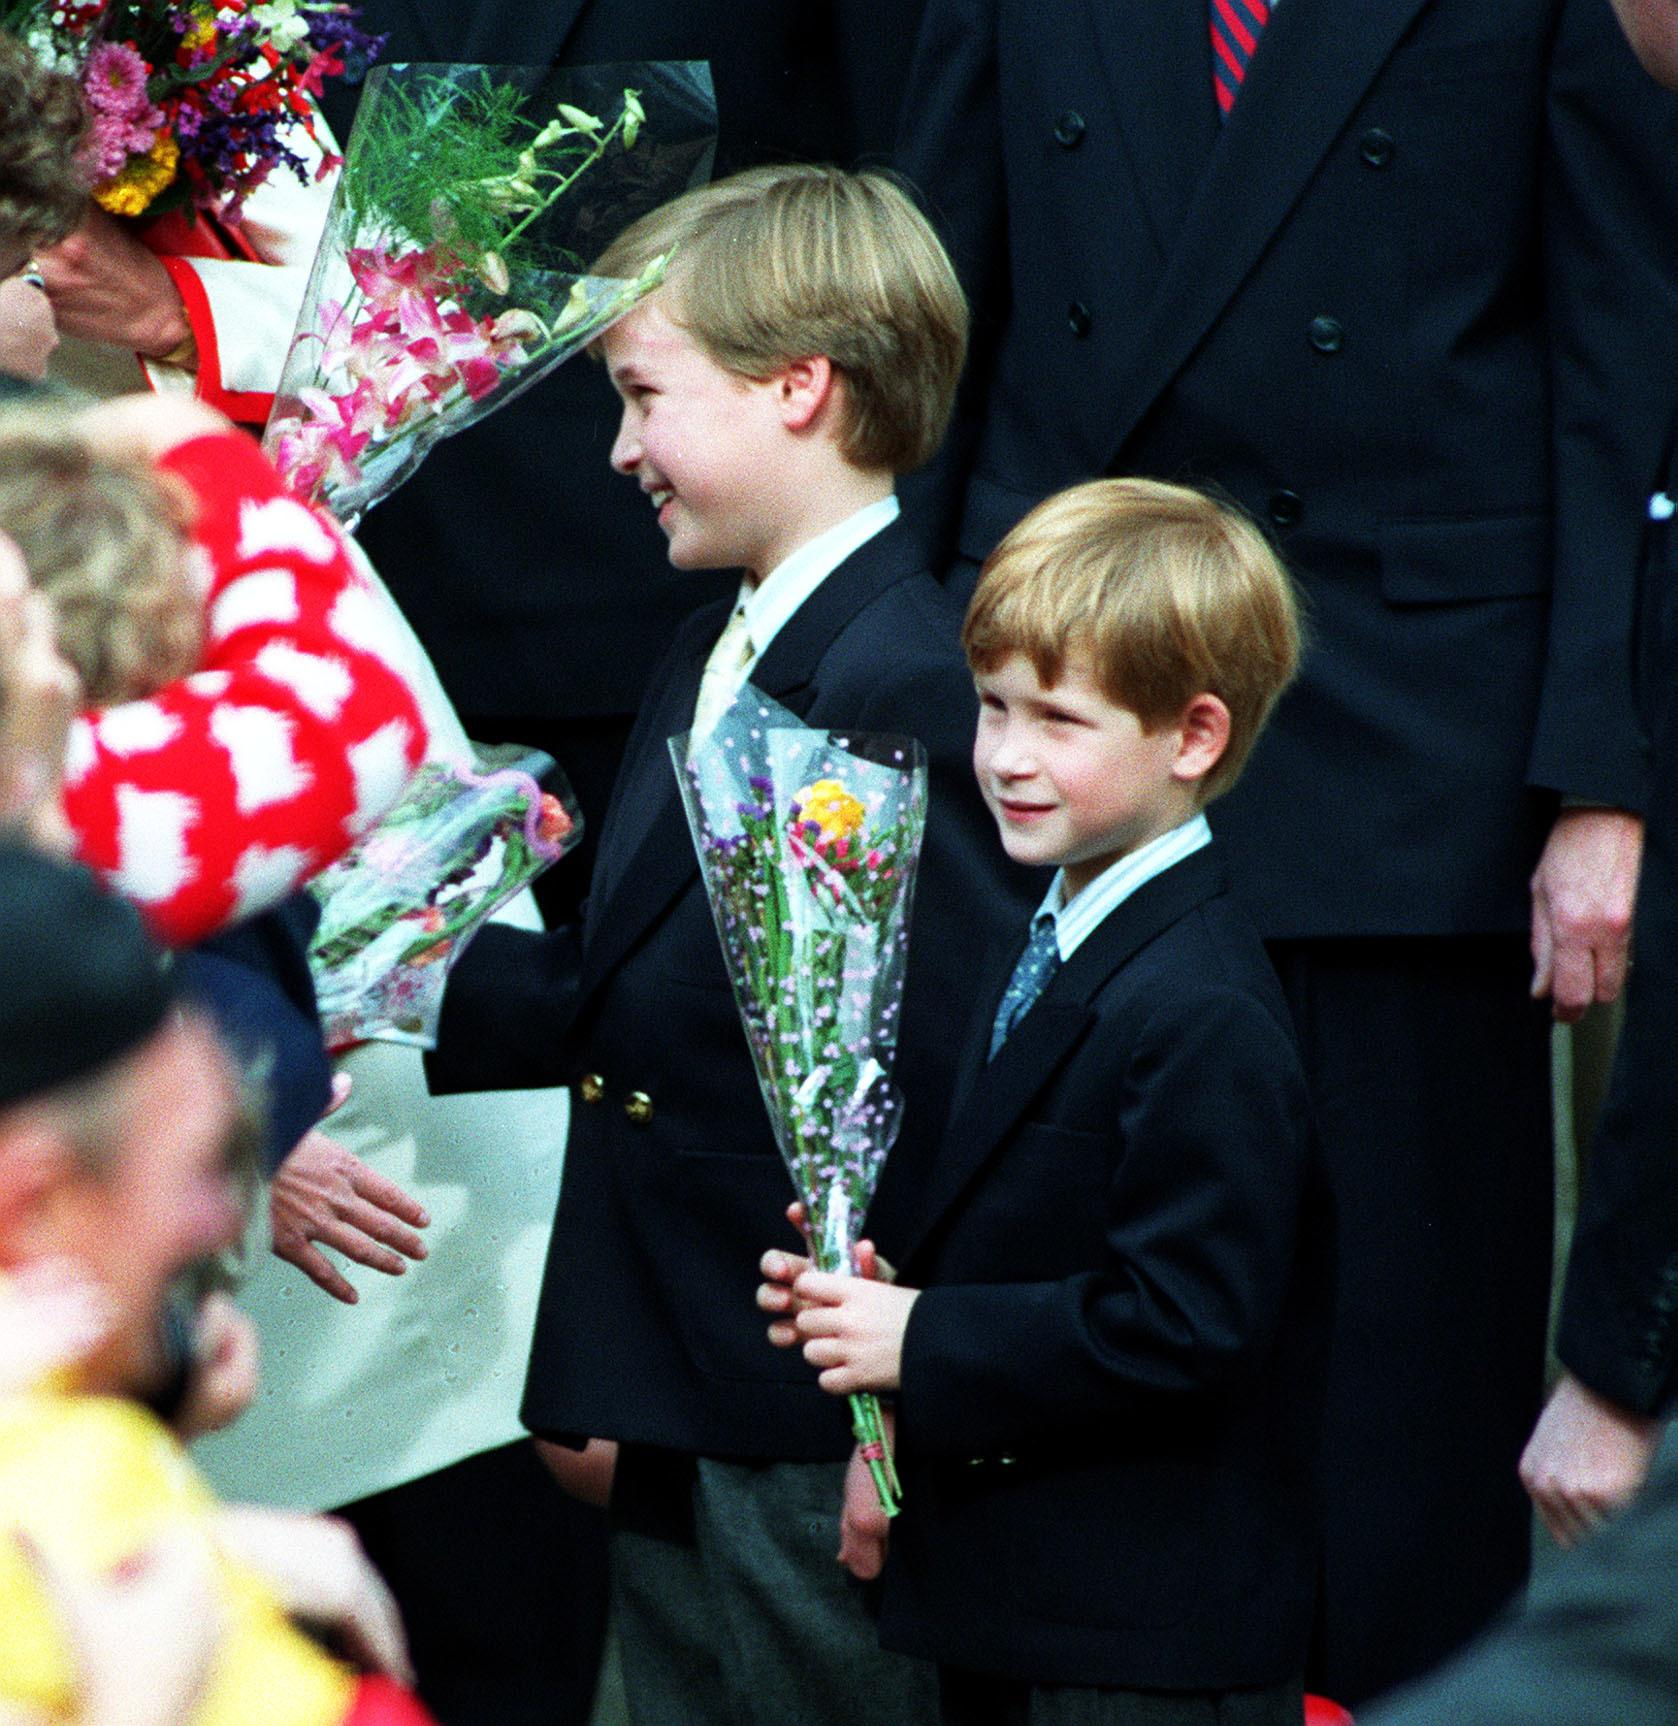 Prince William (left), aged 9, and Prince Harry, aged 7, go for an informal walkabout after they had attended Sunday morning service  with their parents, the Prince and Princess of Wales, at St. James' Cathedral in Toronto, Canada. The family then left Toronto on board the royal yacht.   (Photo by Martin Keene - PA Images/PA Images via Getty Images)